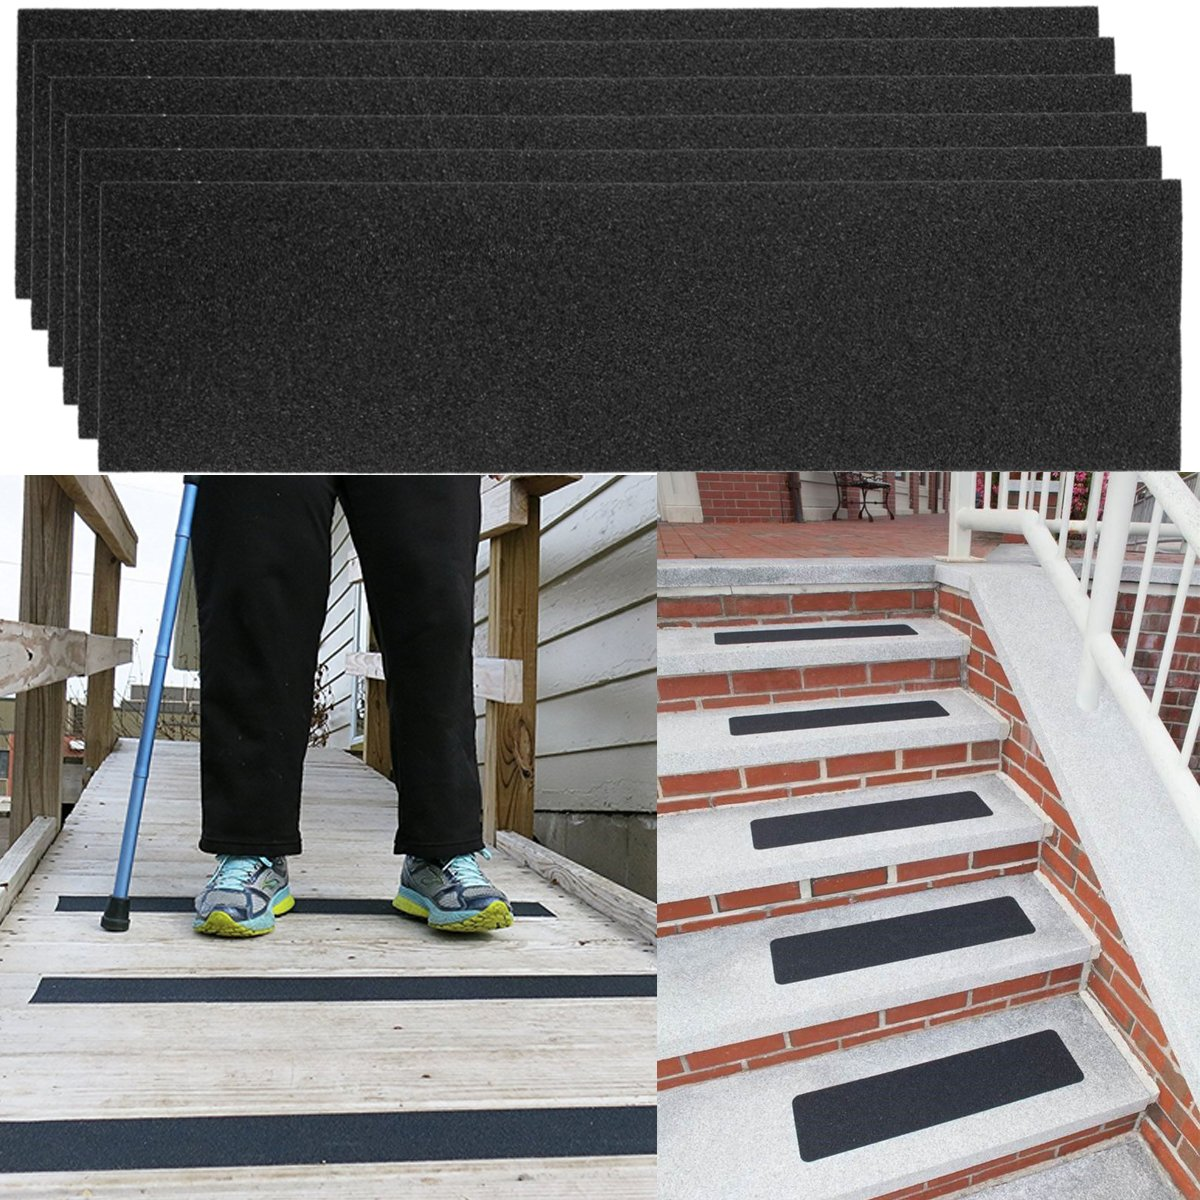 "12 Pack Non-slip 24"" x 6"" Step Safety Treads Grip Tape For Skateboard Strips and Stairs Safety Adhesive Stair Treads For Kids, Elders And Pets, Prevents Slipping by DG Home Goods (Image #1)"